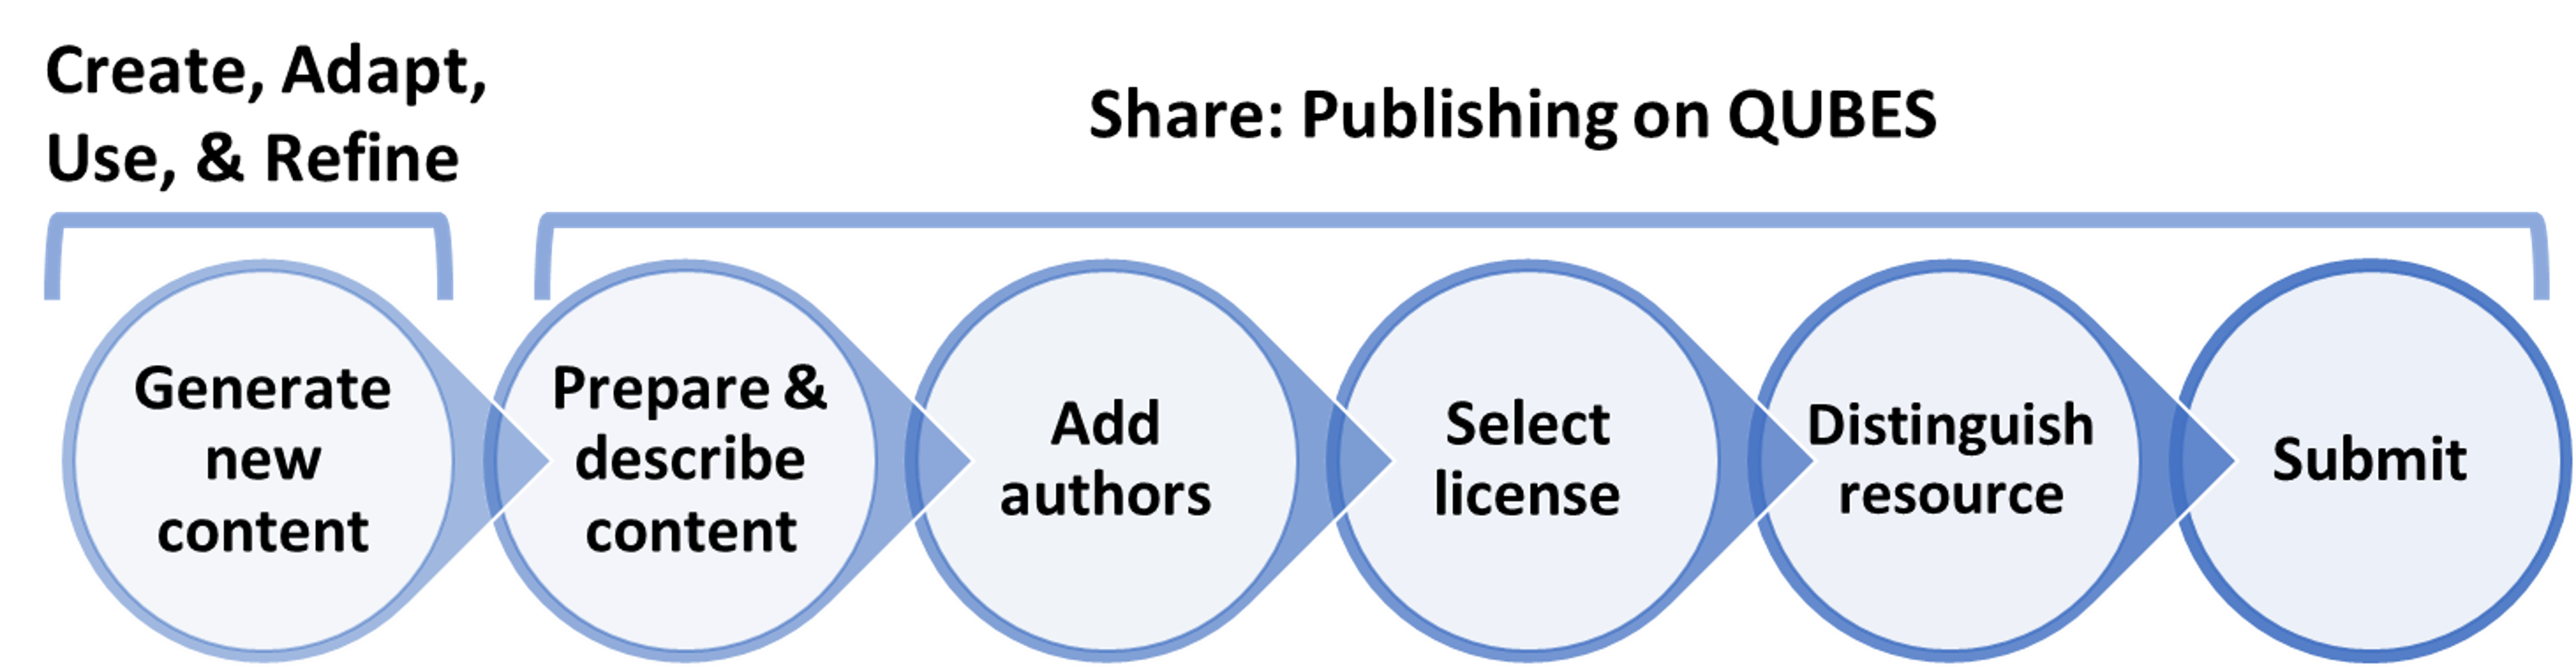 overview of the publishing process. Create, adapt, use, and refine lead to the generation of new content. Share encompasses all the steps to publishing on QUBES: describe content, add authors, select license, distinguish resource, and submit